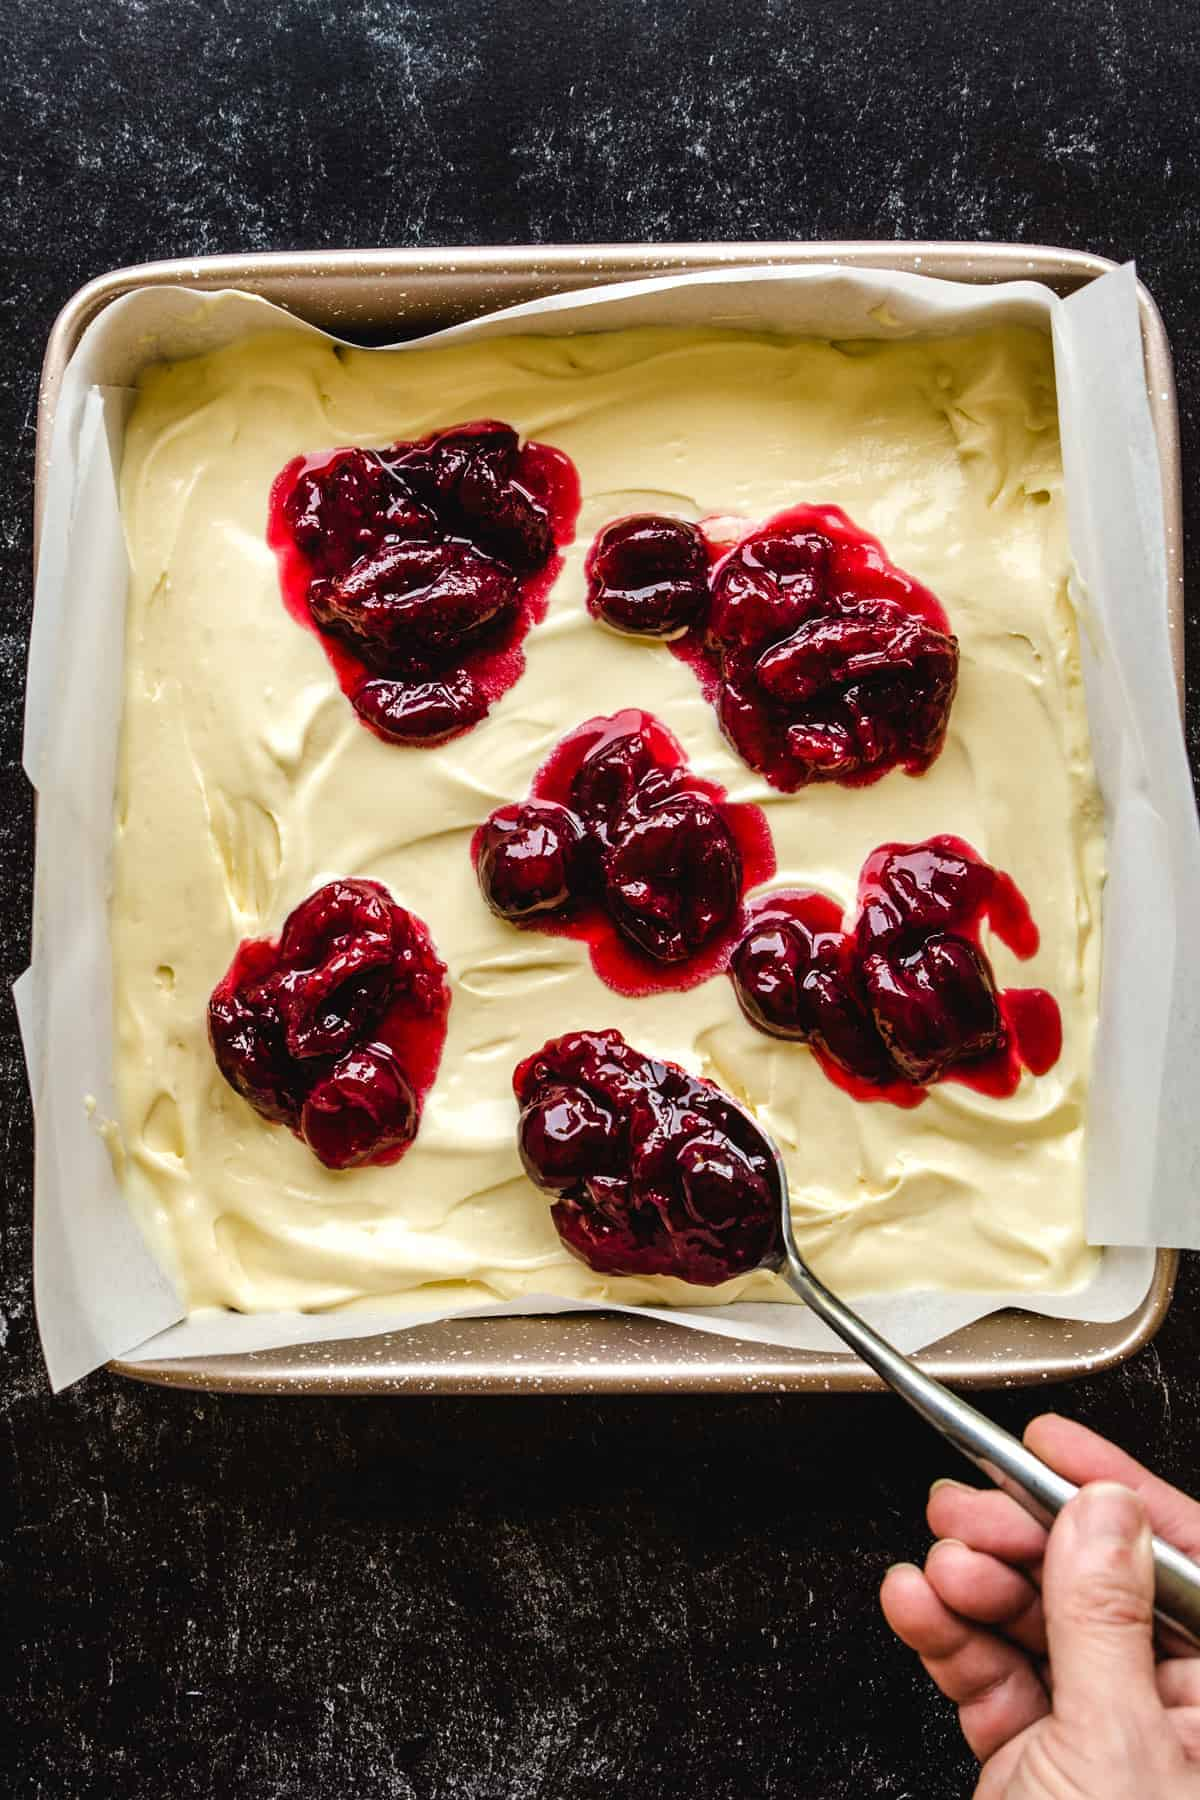 Adding bourbon bing cherries to your ice cream base makes this a delicious dessert